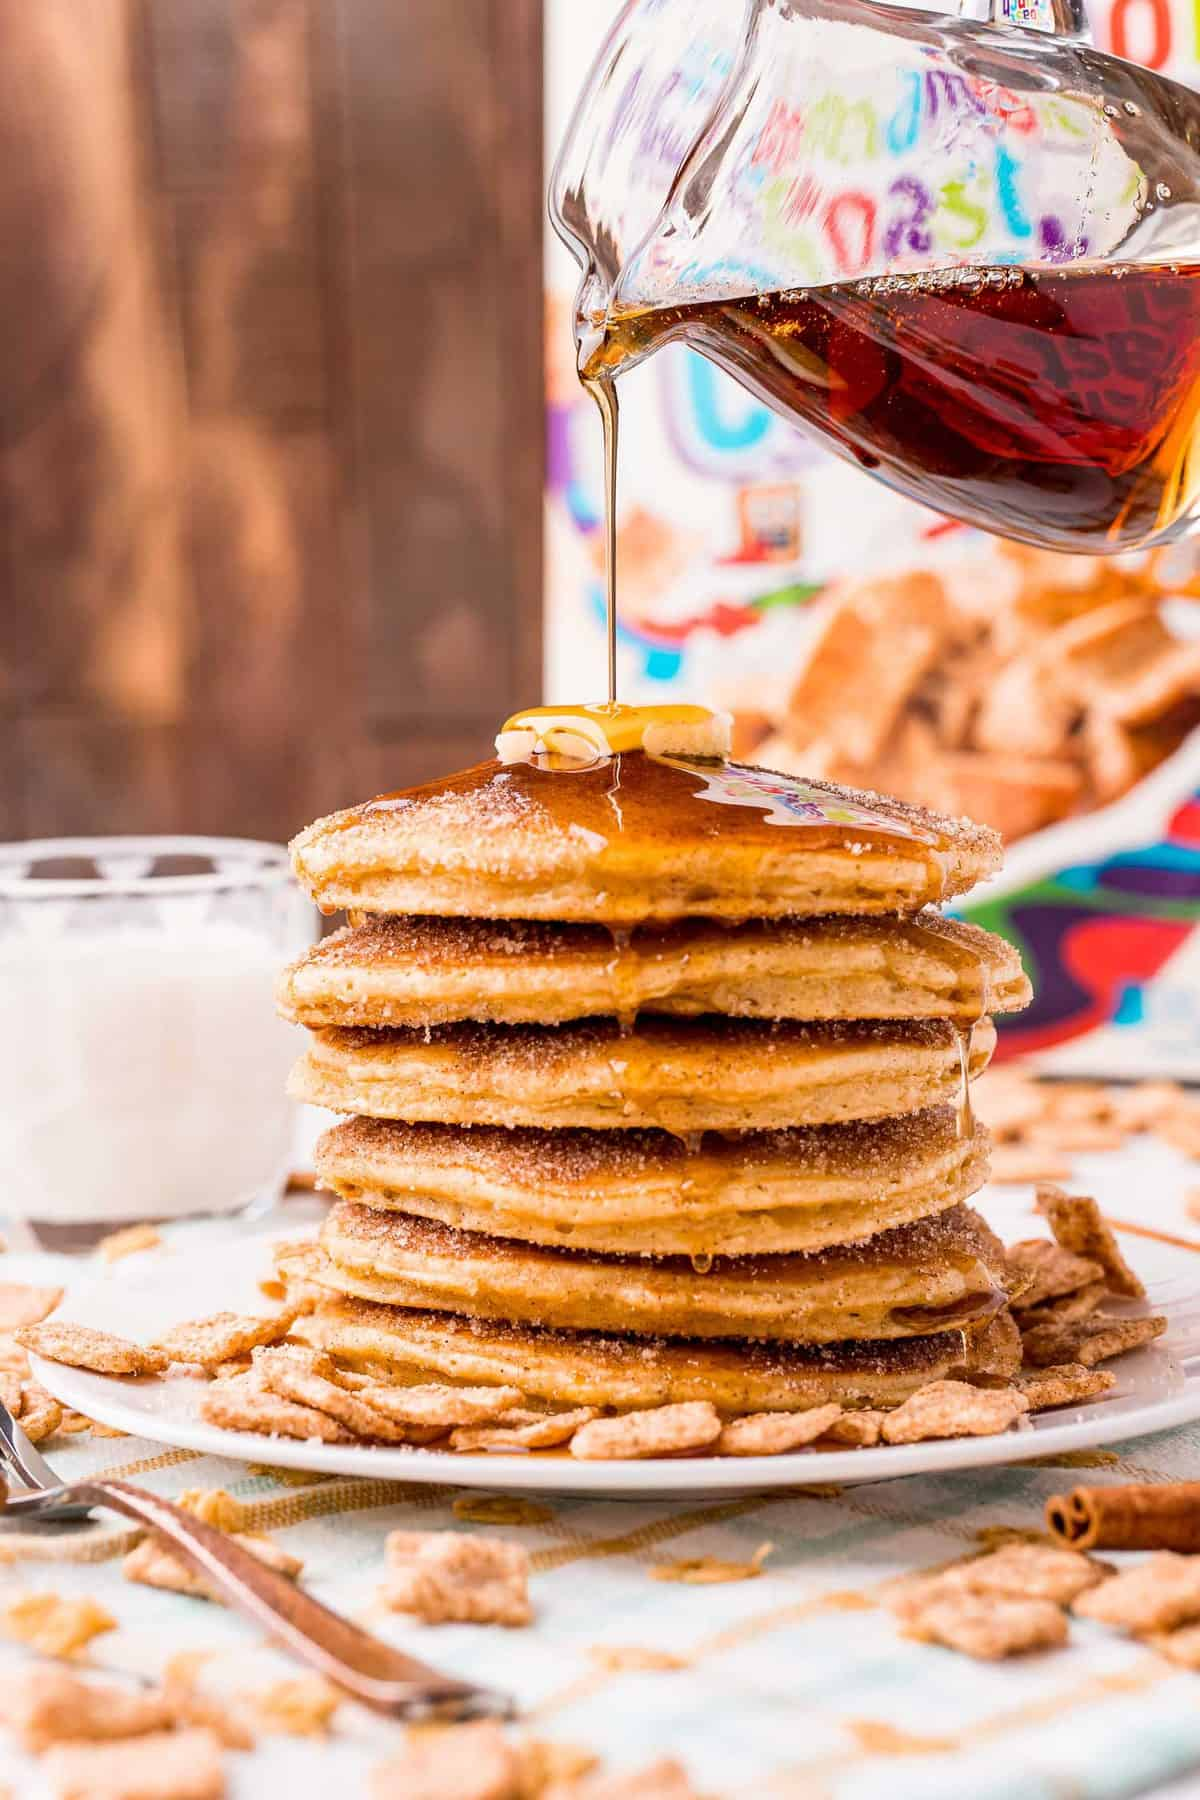 Syrup being poured on a tall stack of pancakes.